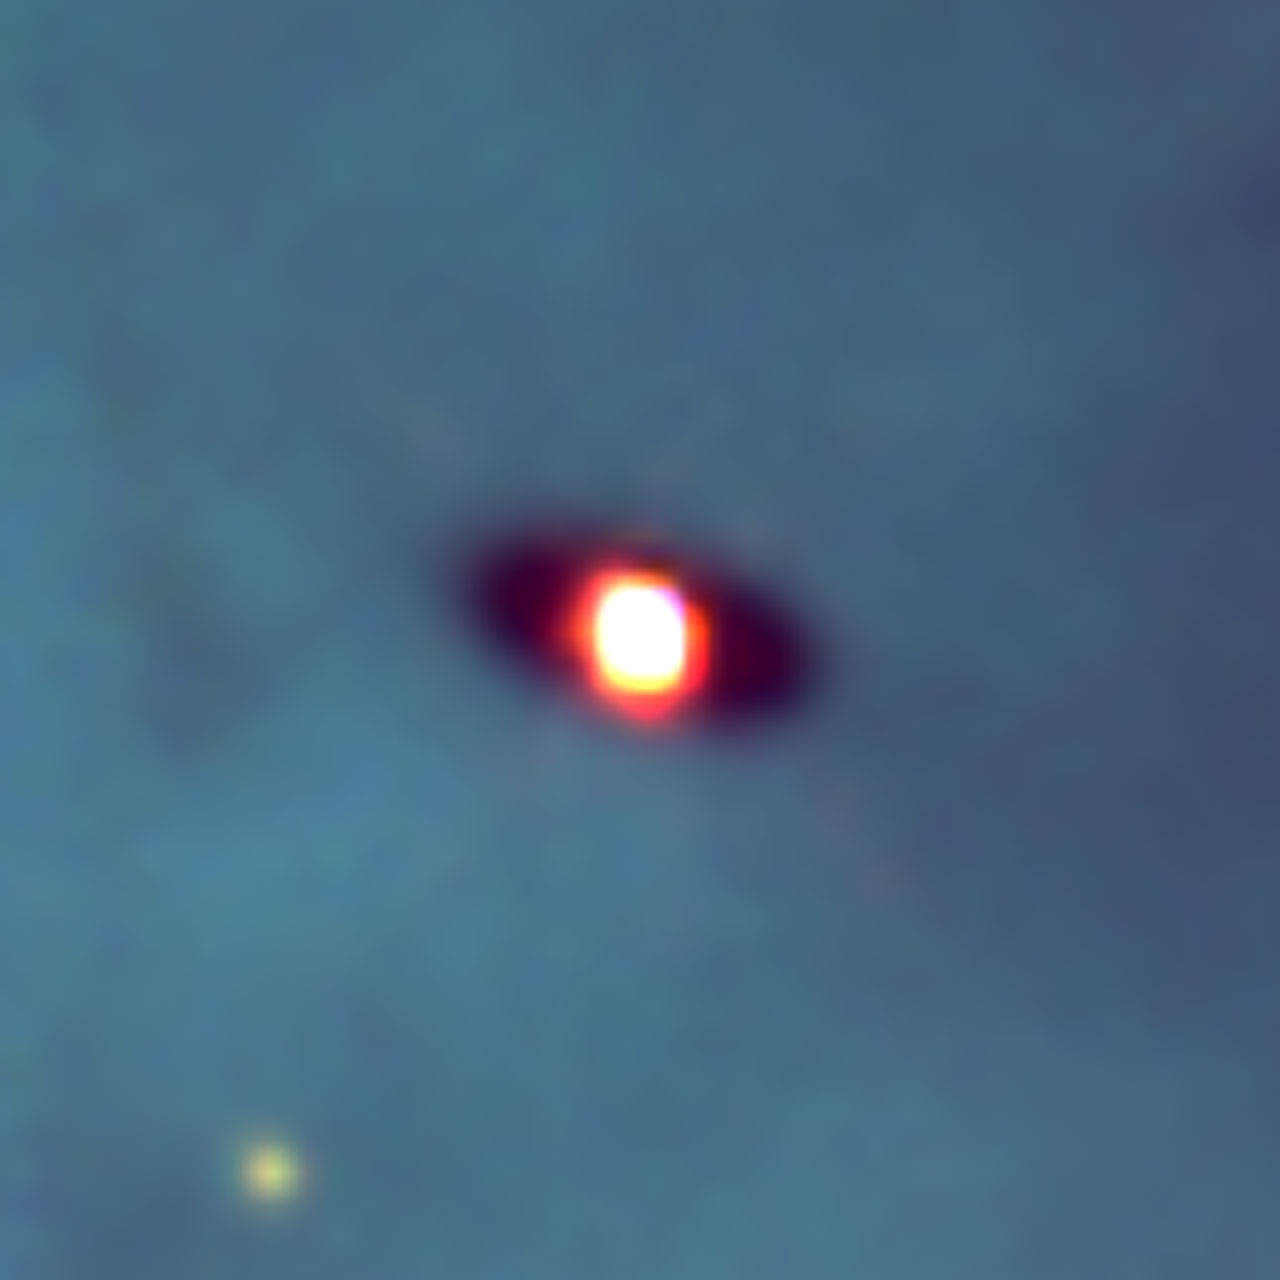 Protoplanetary Disc in the Orion Nebula